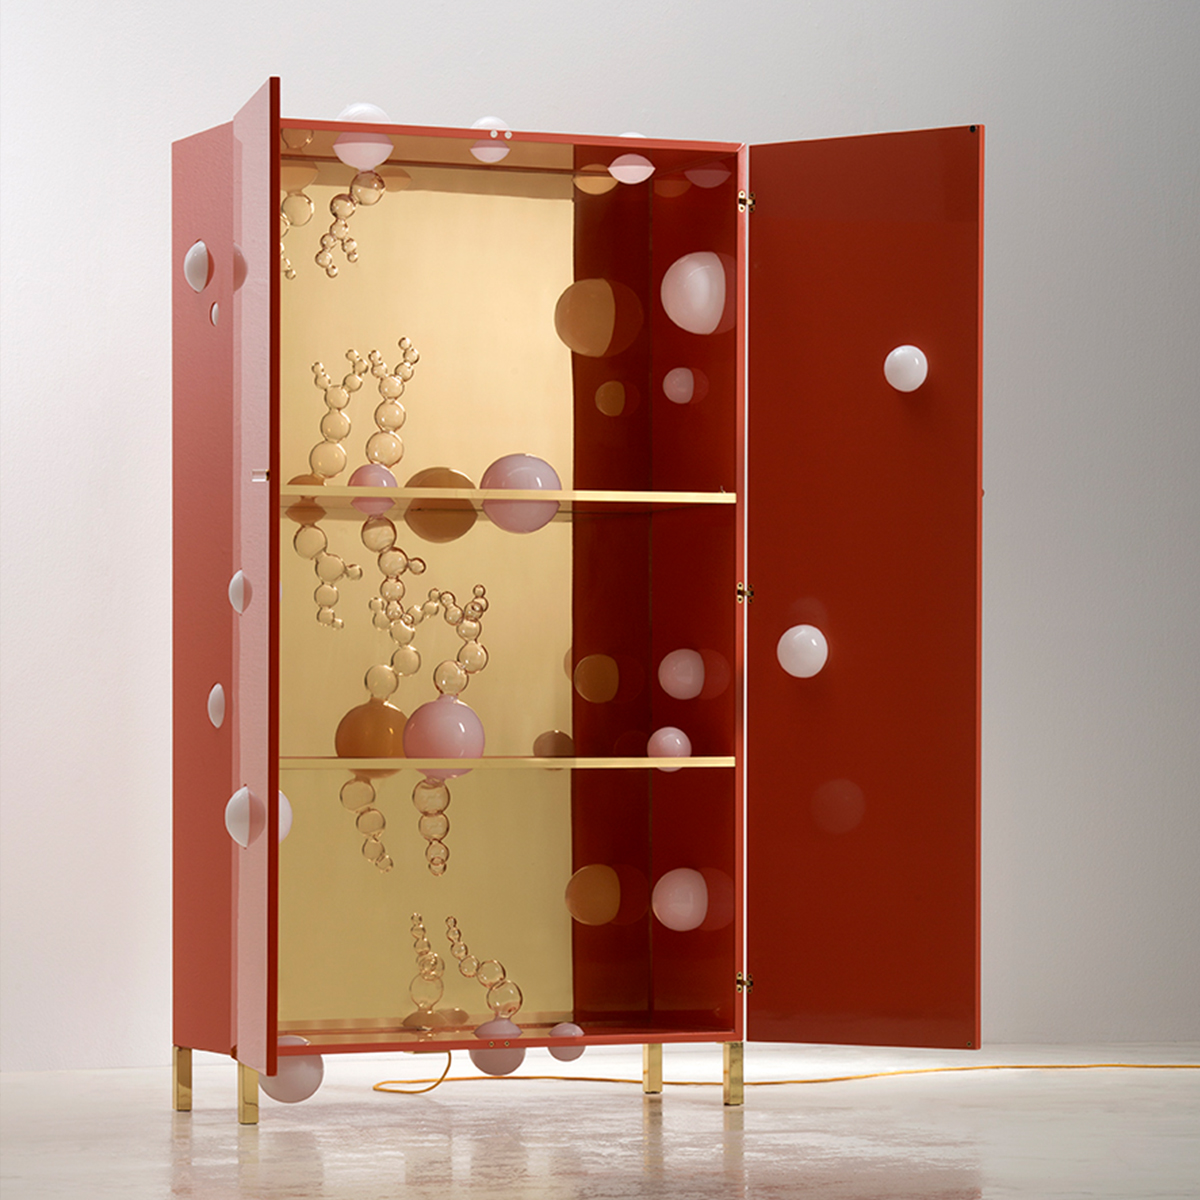 Handmade wooden and glass cabinet